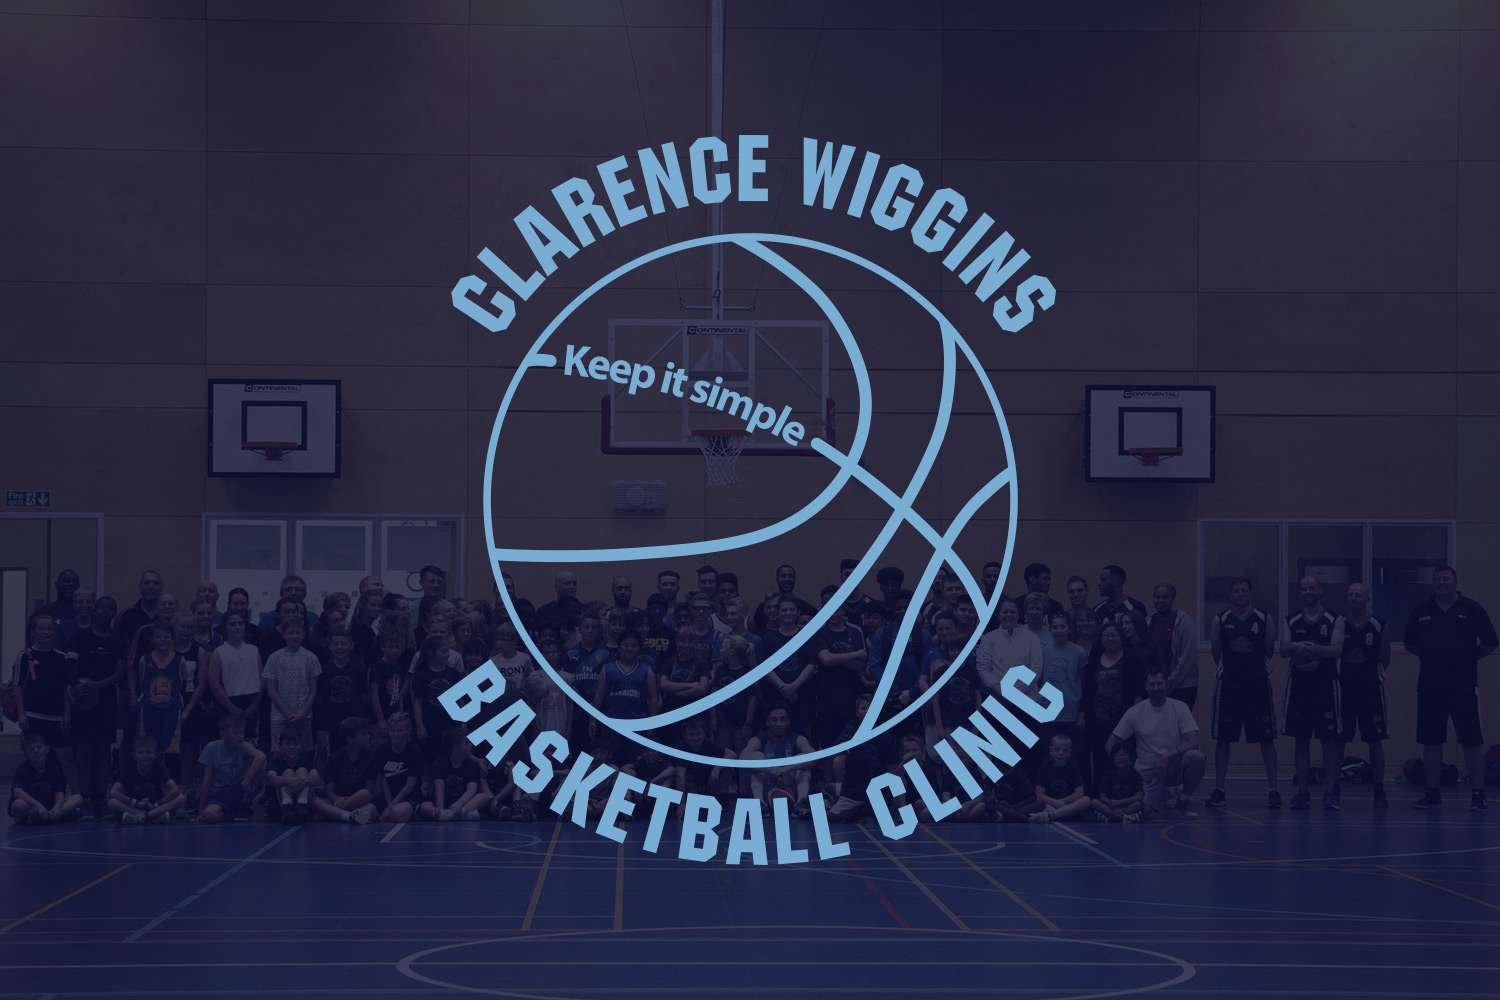 Clarence Wiggins Basketball Clinic, Derby